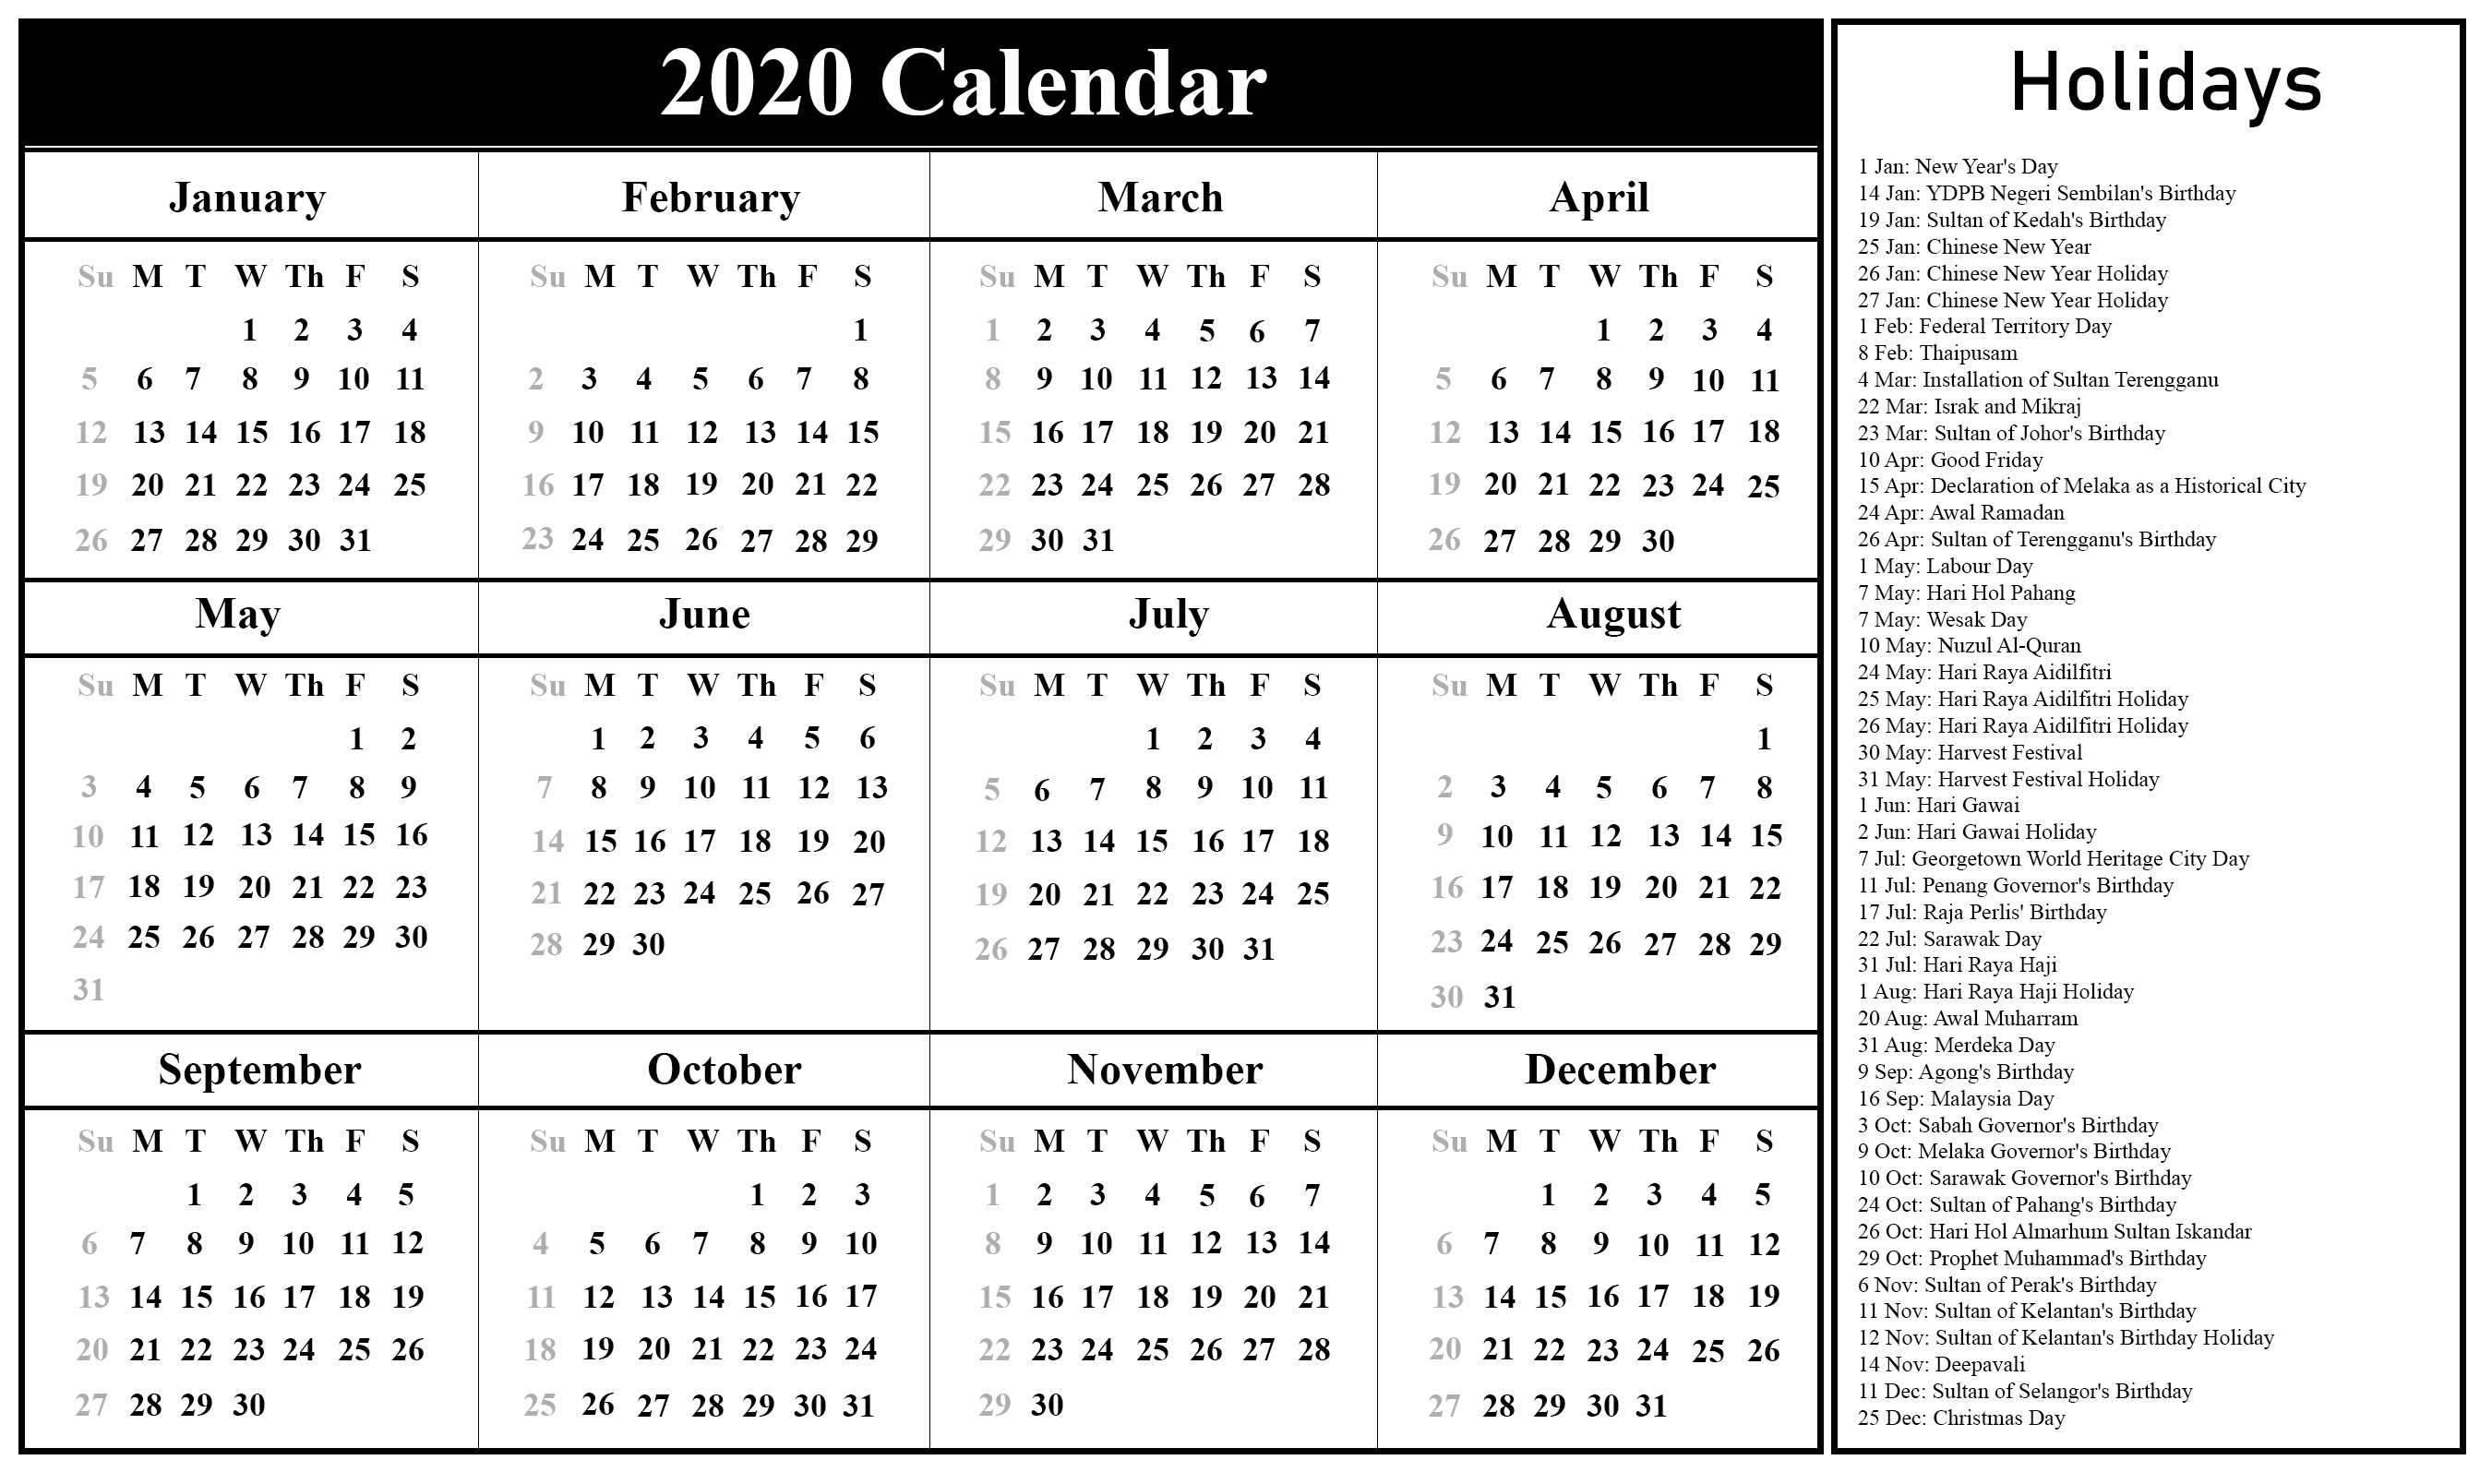 Free Blank Malaysia Calendar 2020 In Pdf, Excel & Word Free Printable Calenders With Legal Holidays